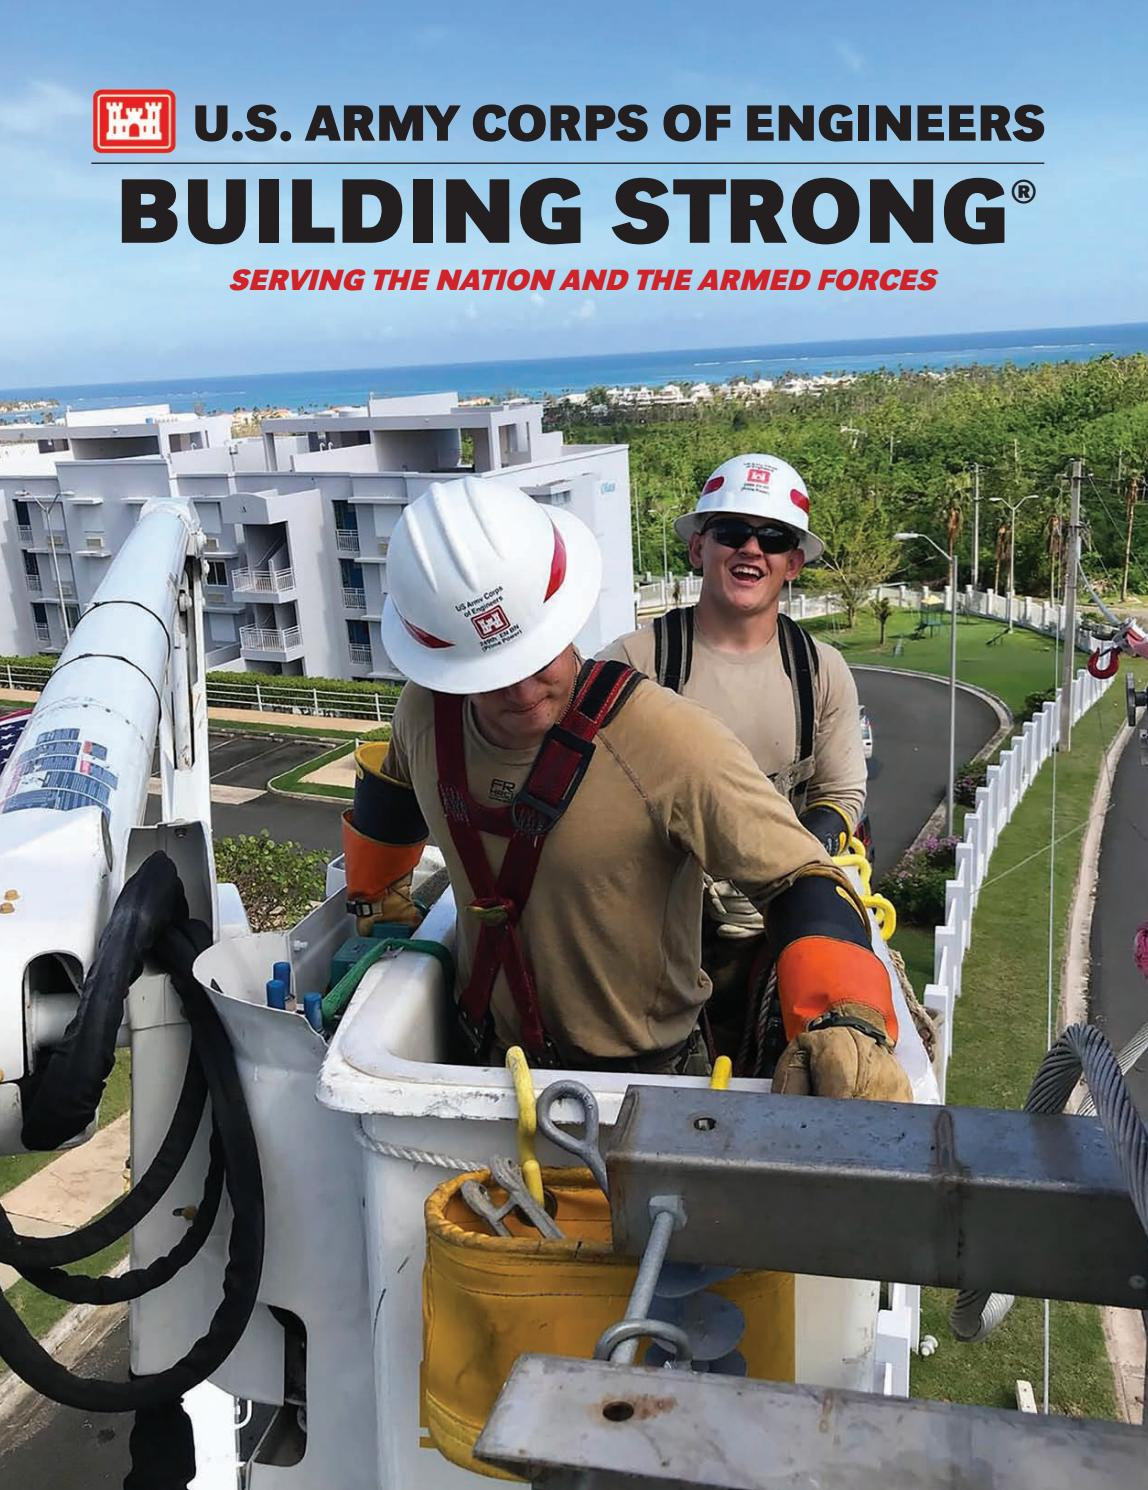 b35f18d97313 U.S. Army Corps of Engineers  Building Strong 2017-2018 Edition by  Faircount Media Group - issuu